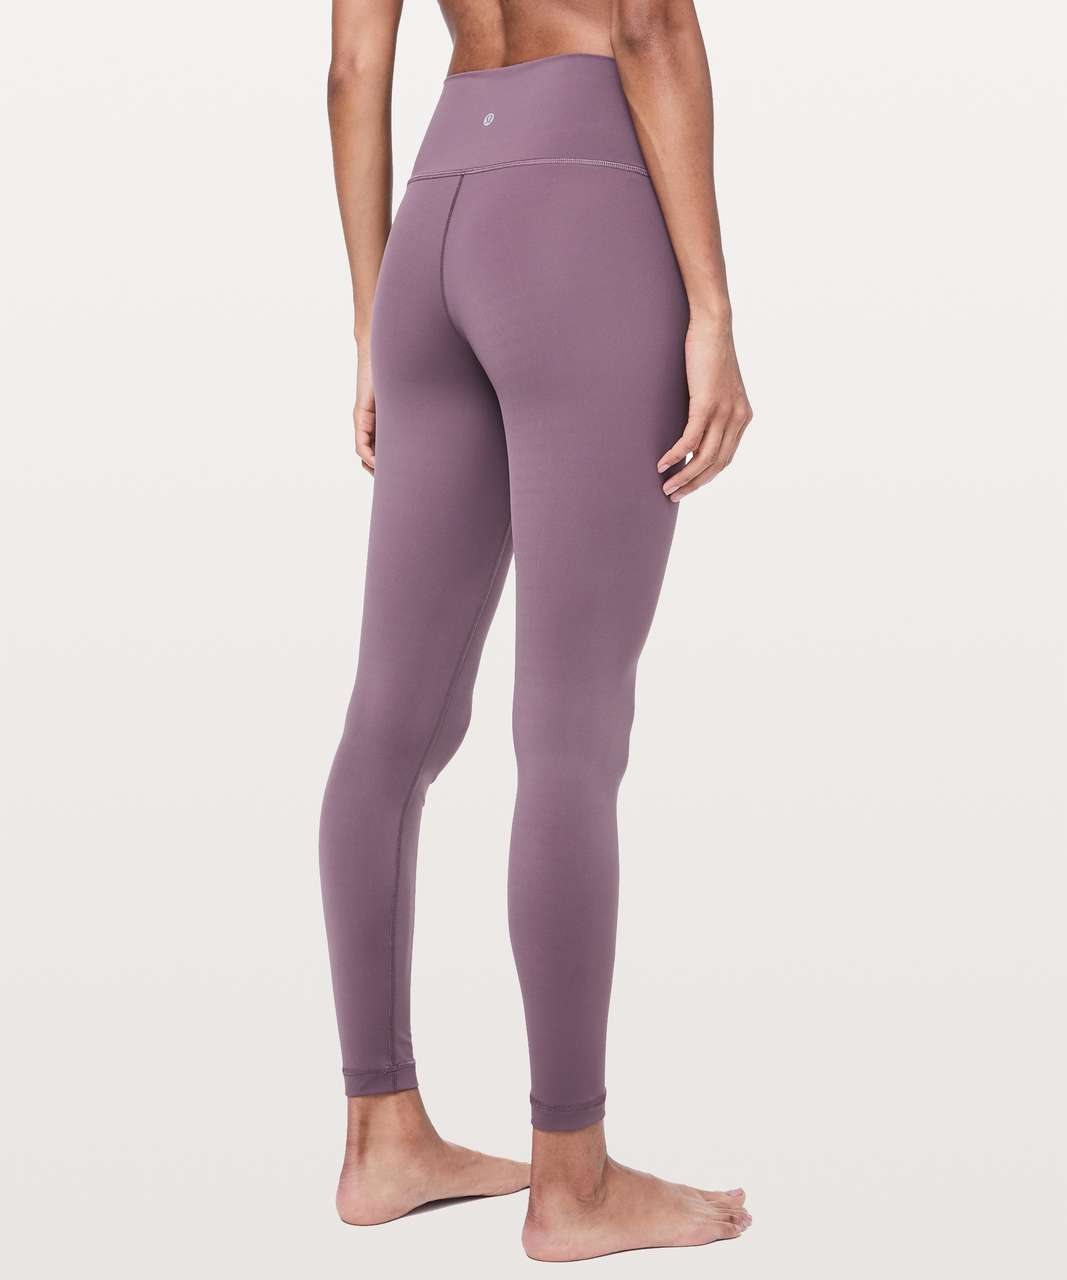 bcc7407a15 Lululemon Wunder Under High-Rise Tight *Nulux 28